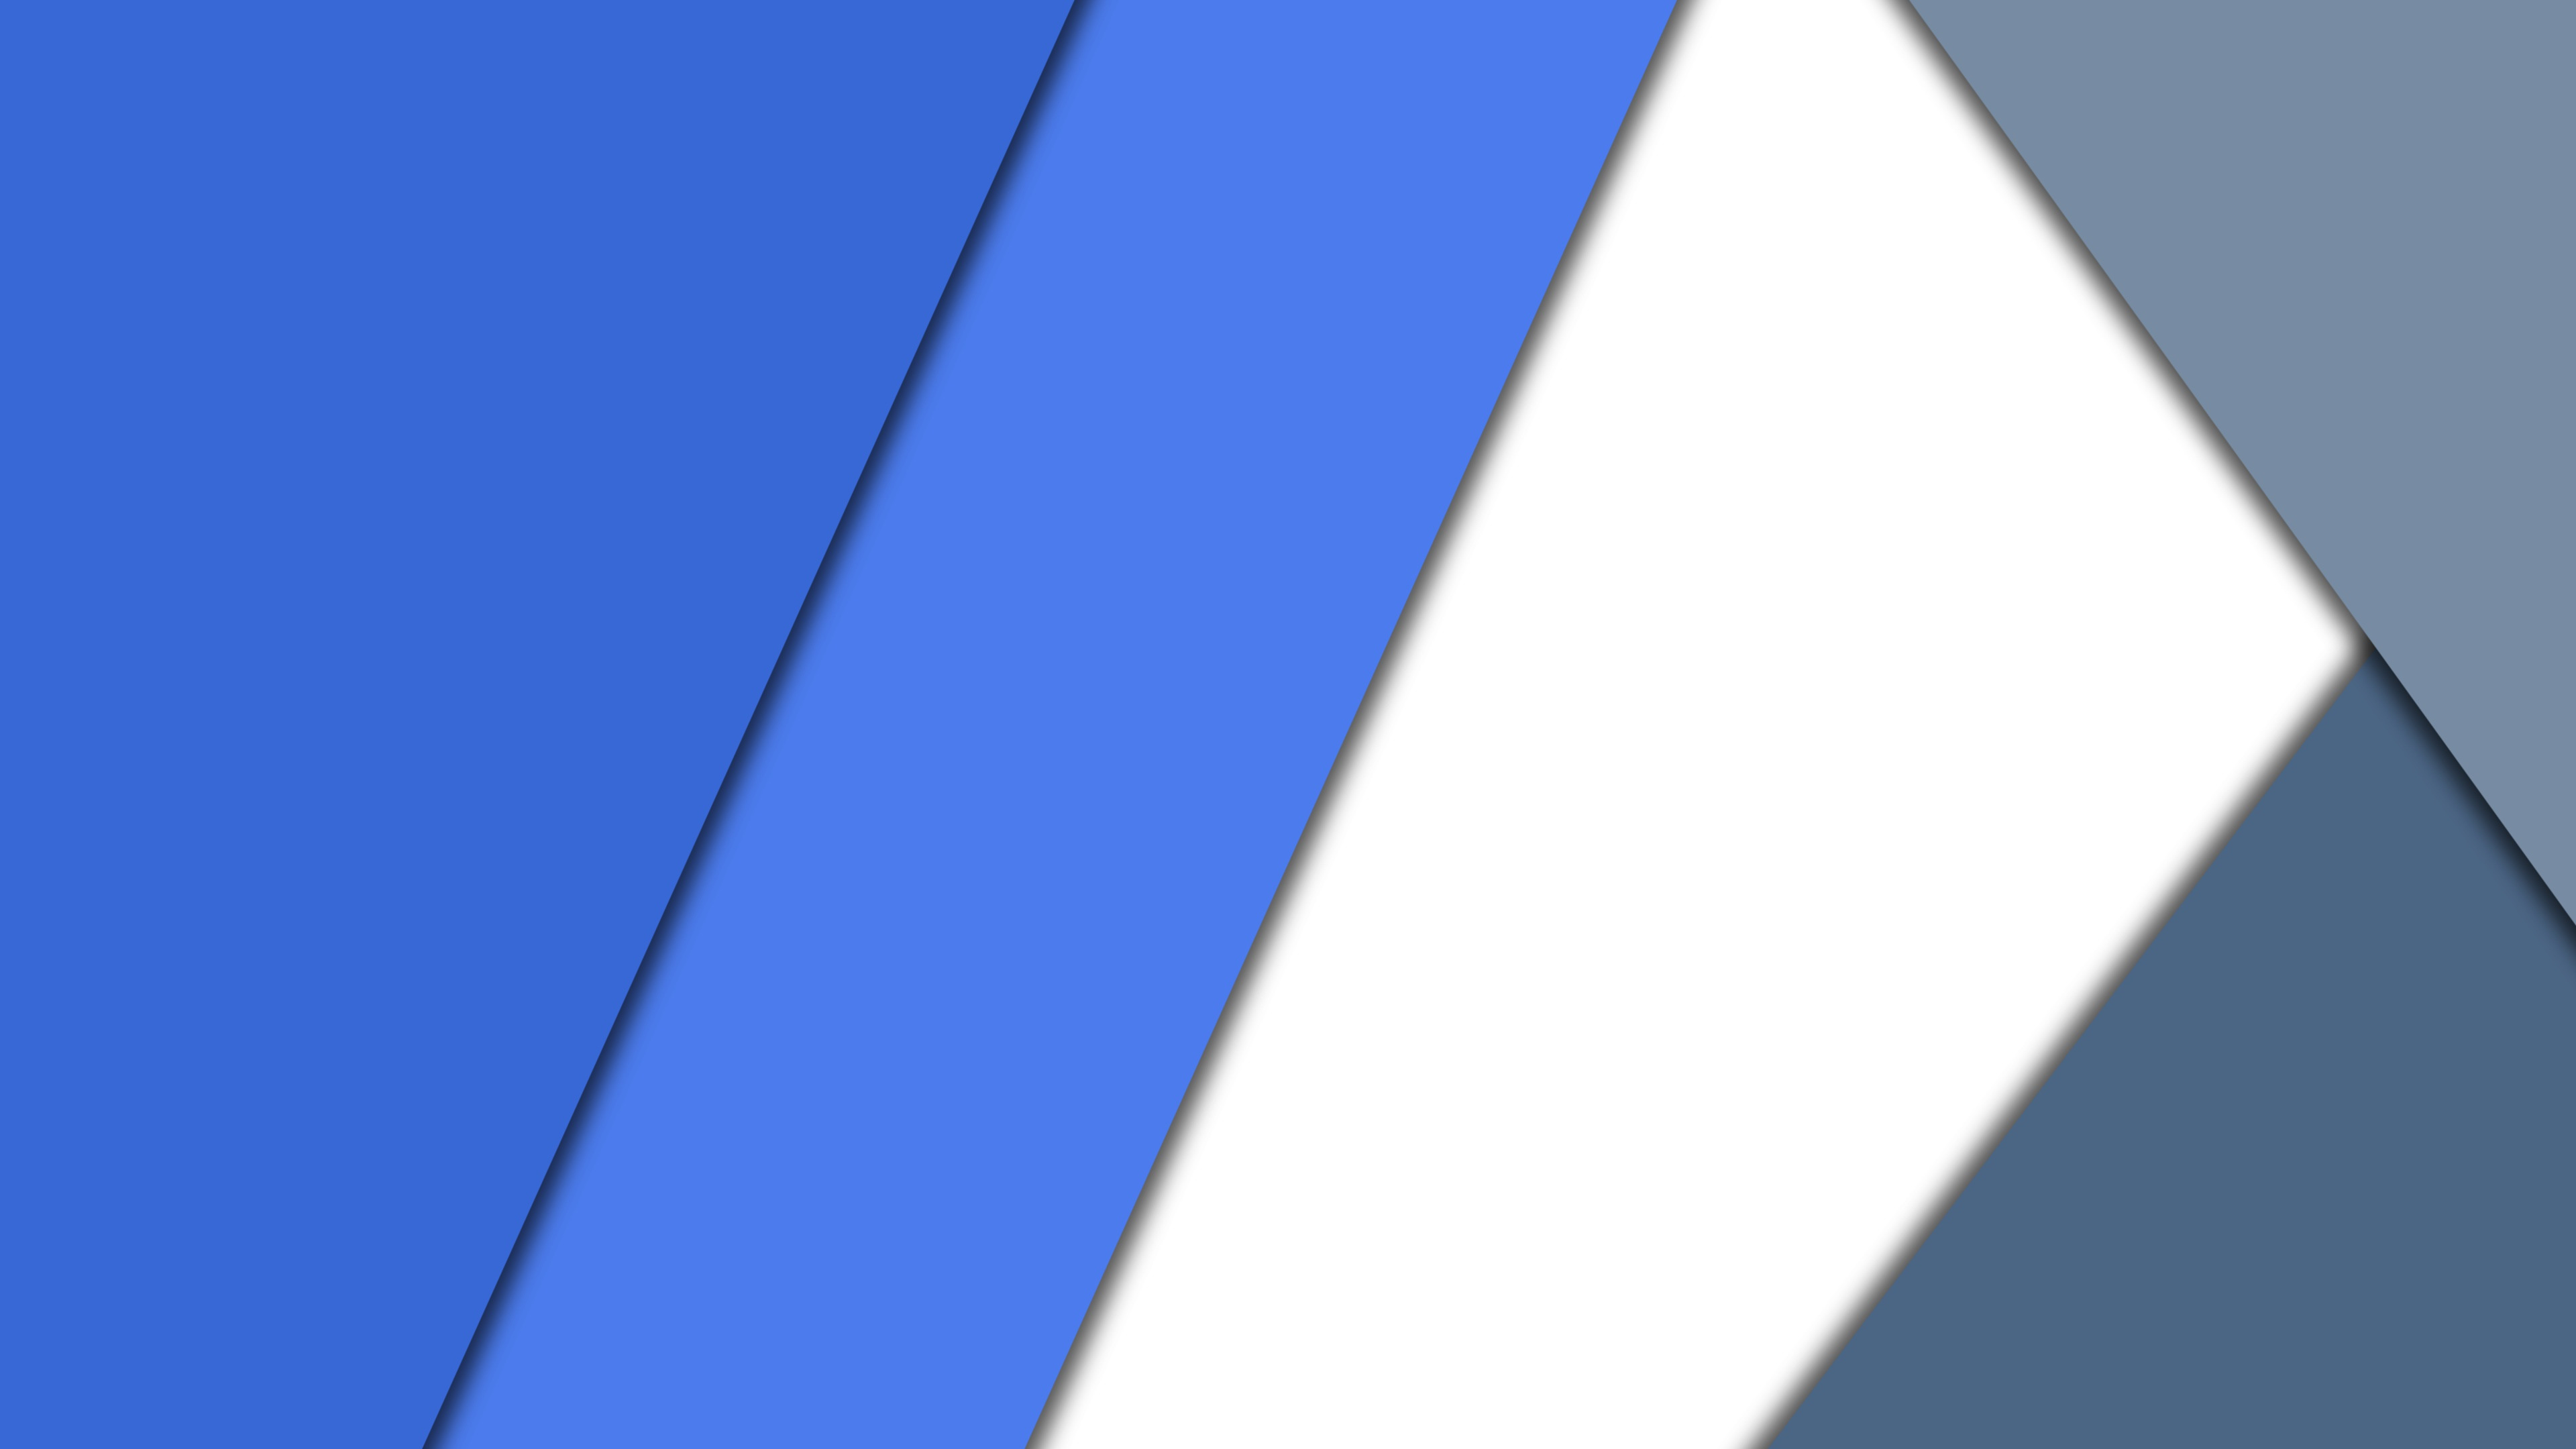 Blue White Material Design 4k Hd Abstract 4k Wallpapers Images